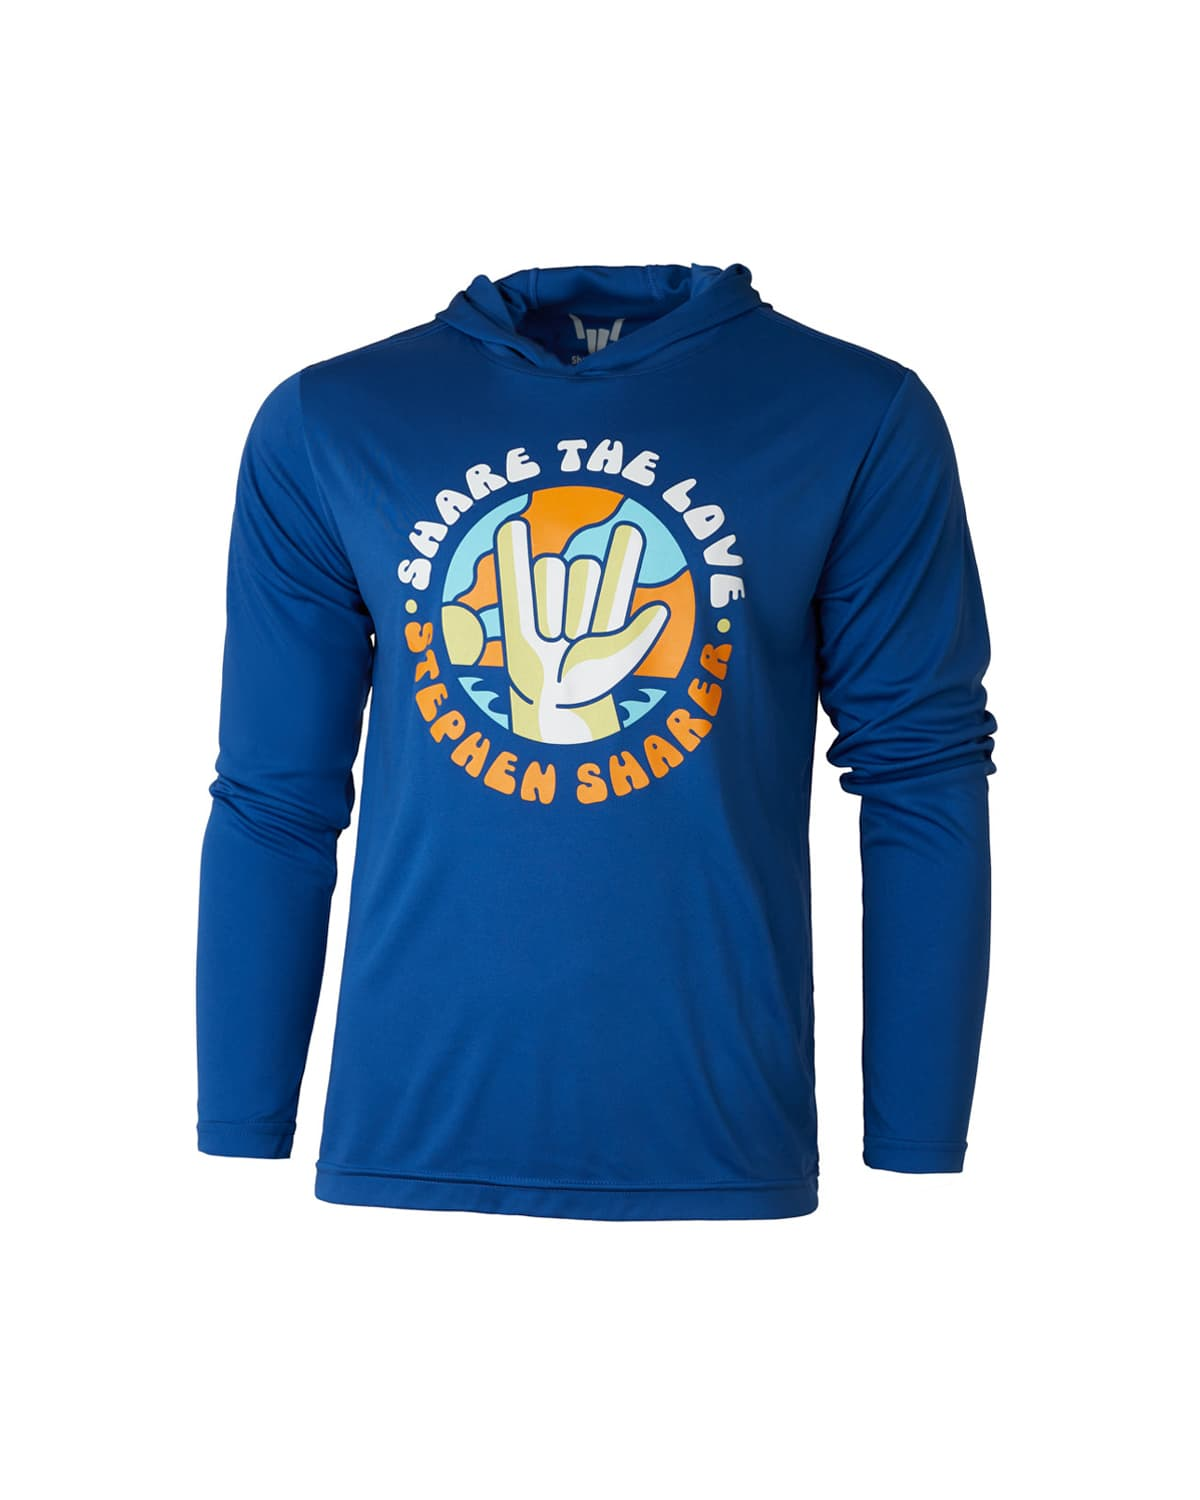 'Fun In The Sun' Hooded Long Sleeve Performance Tee